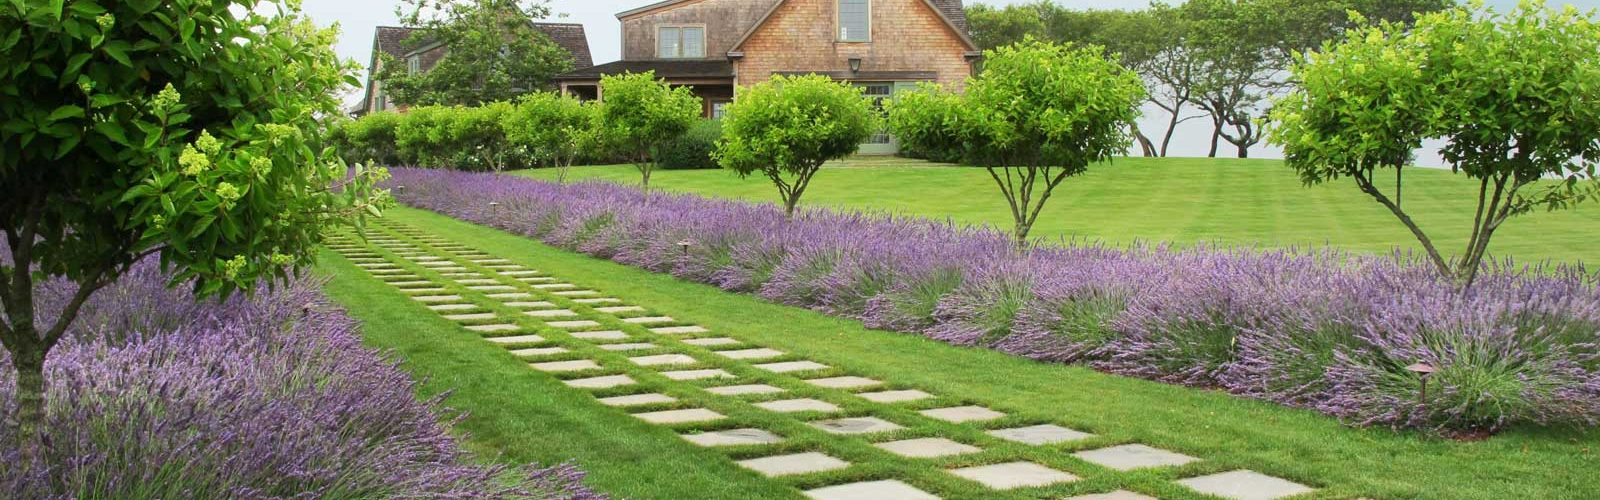 Lawn into Gardening Space